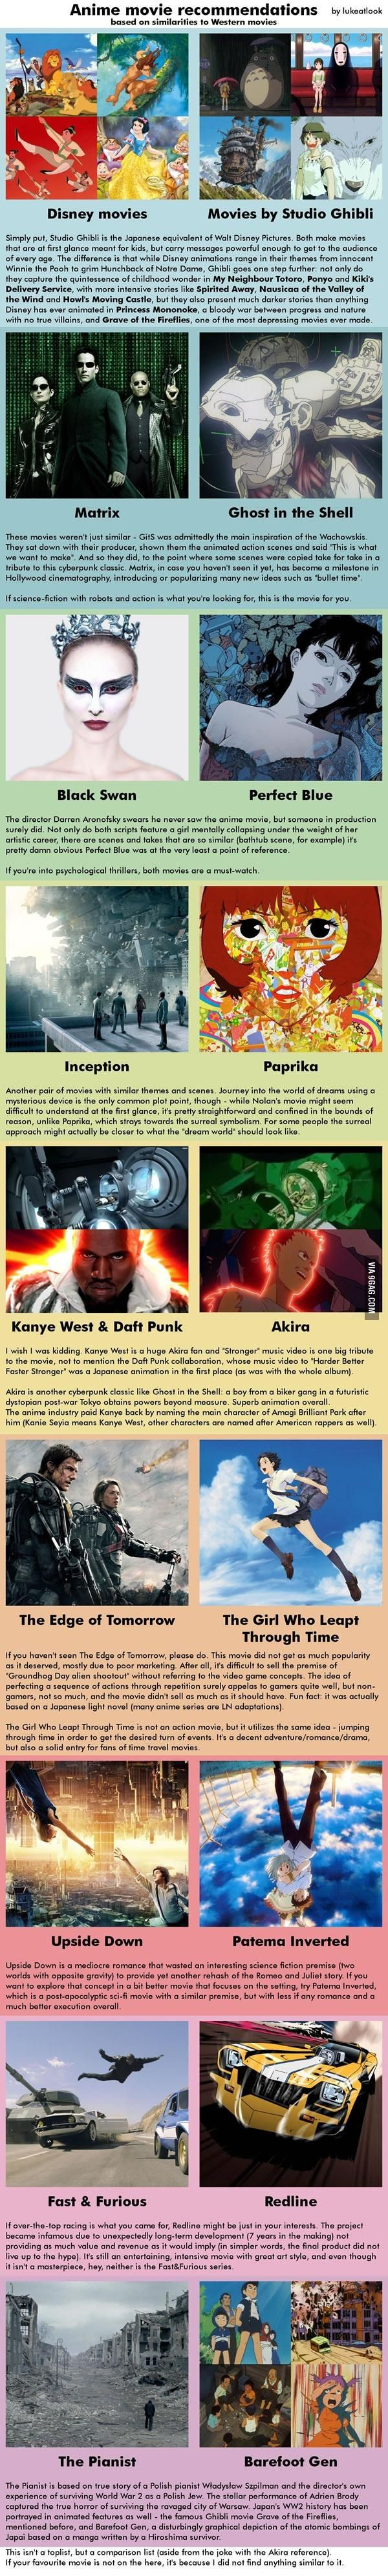 Hmmmmm.... havent seen all of these but pretty interesting. 9 examples of Hollywood movies based on or similar to anime | DailyFailCenter